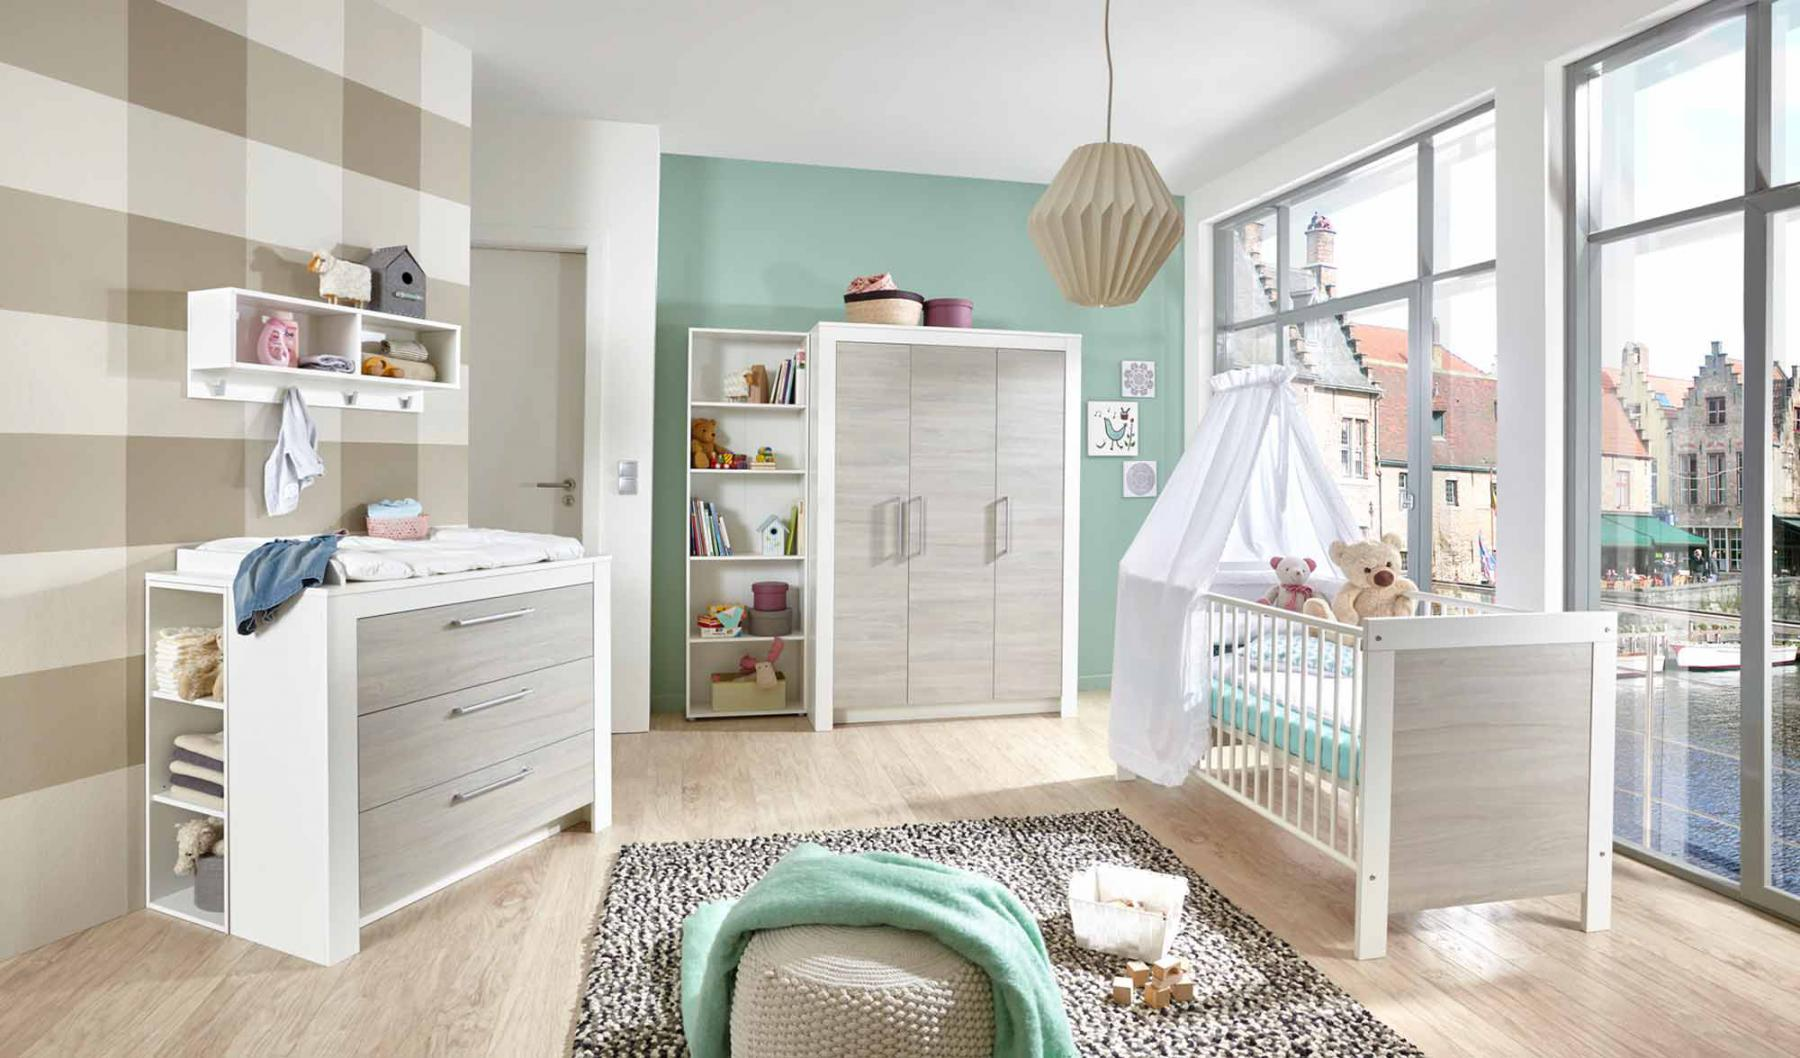 babyzimmer kinderzimmer wei silber grau ulme kaufen bei lifestyle4living m belvertrieb gmbh. Black Bedroom Furniture Sets. Home Design Ideas